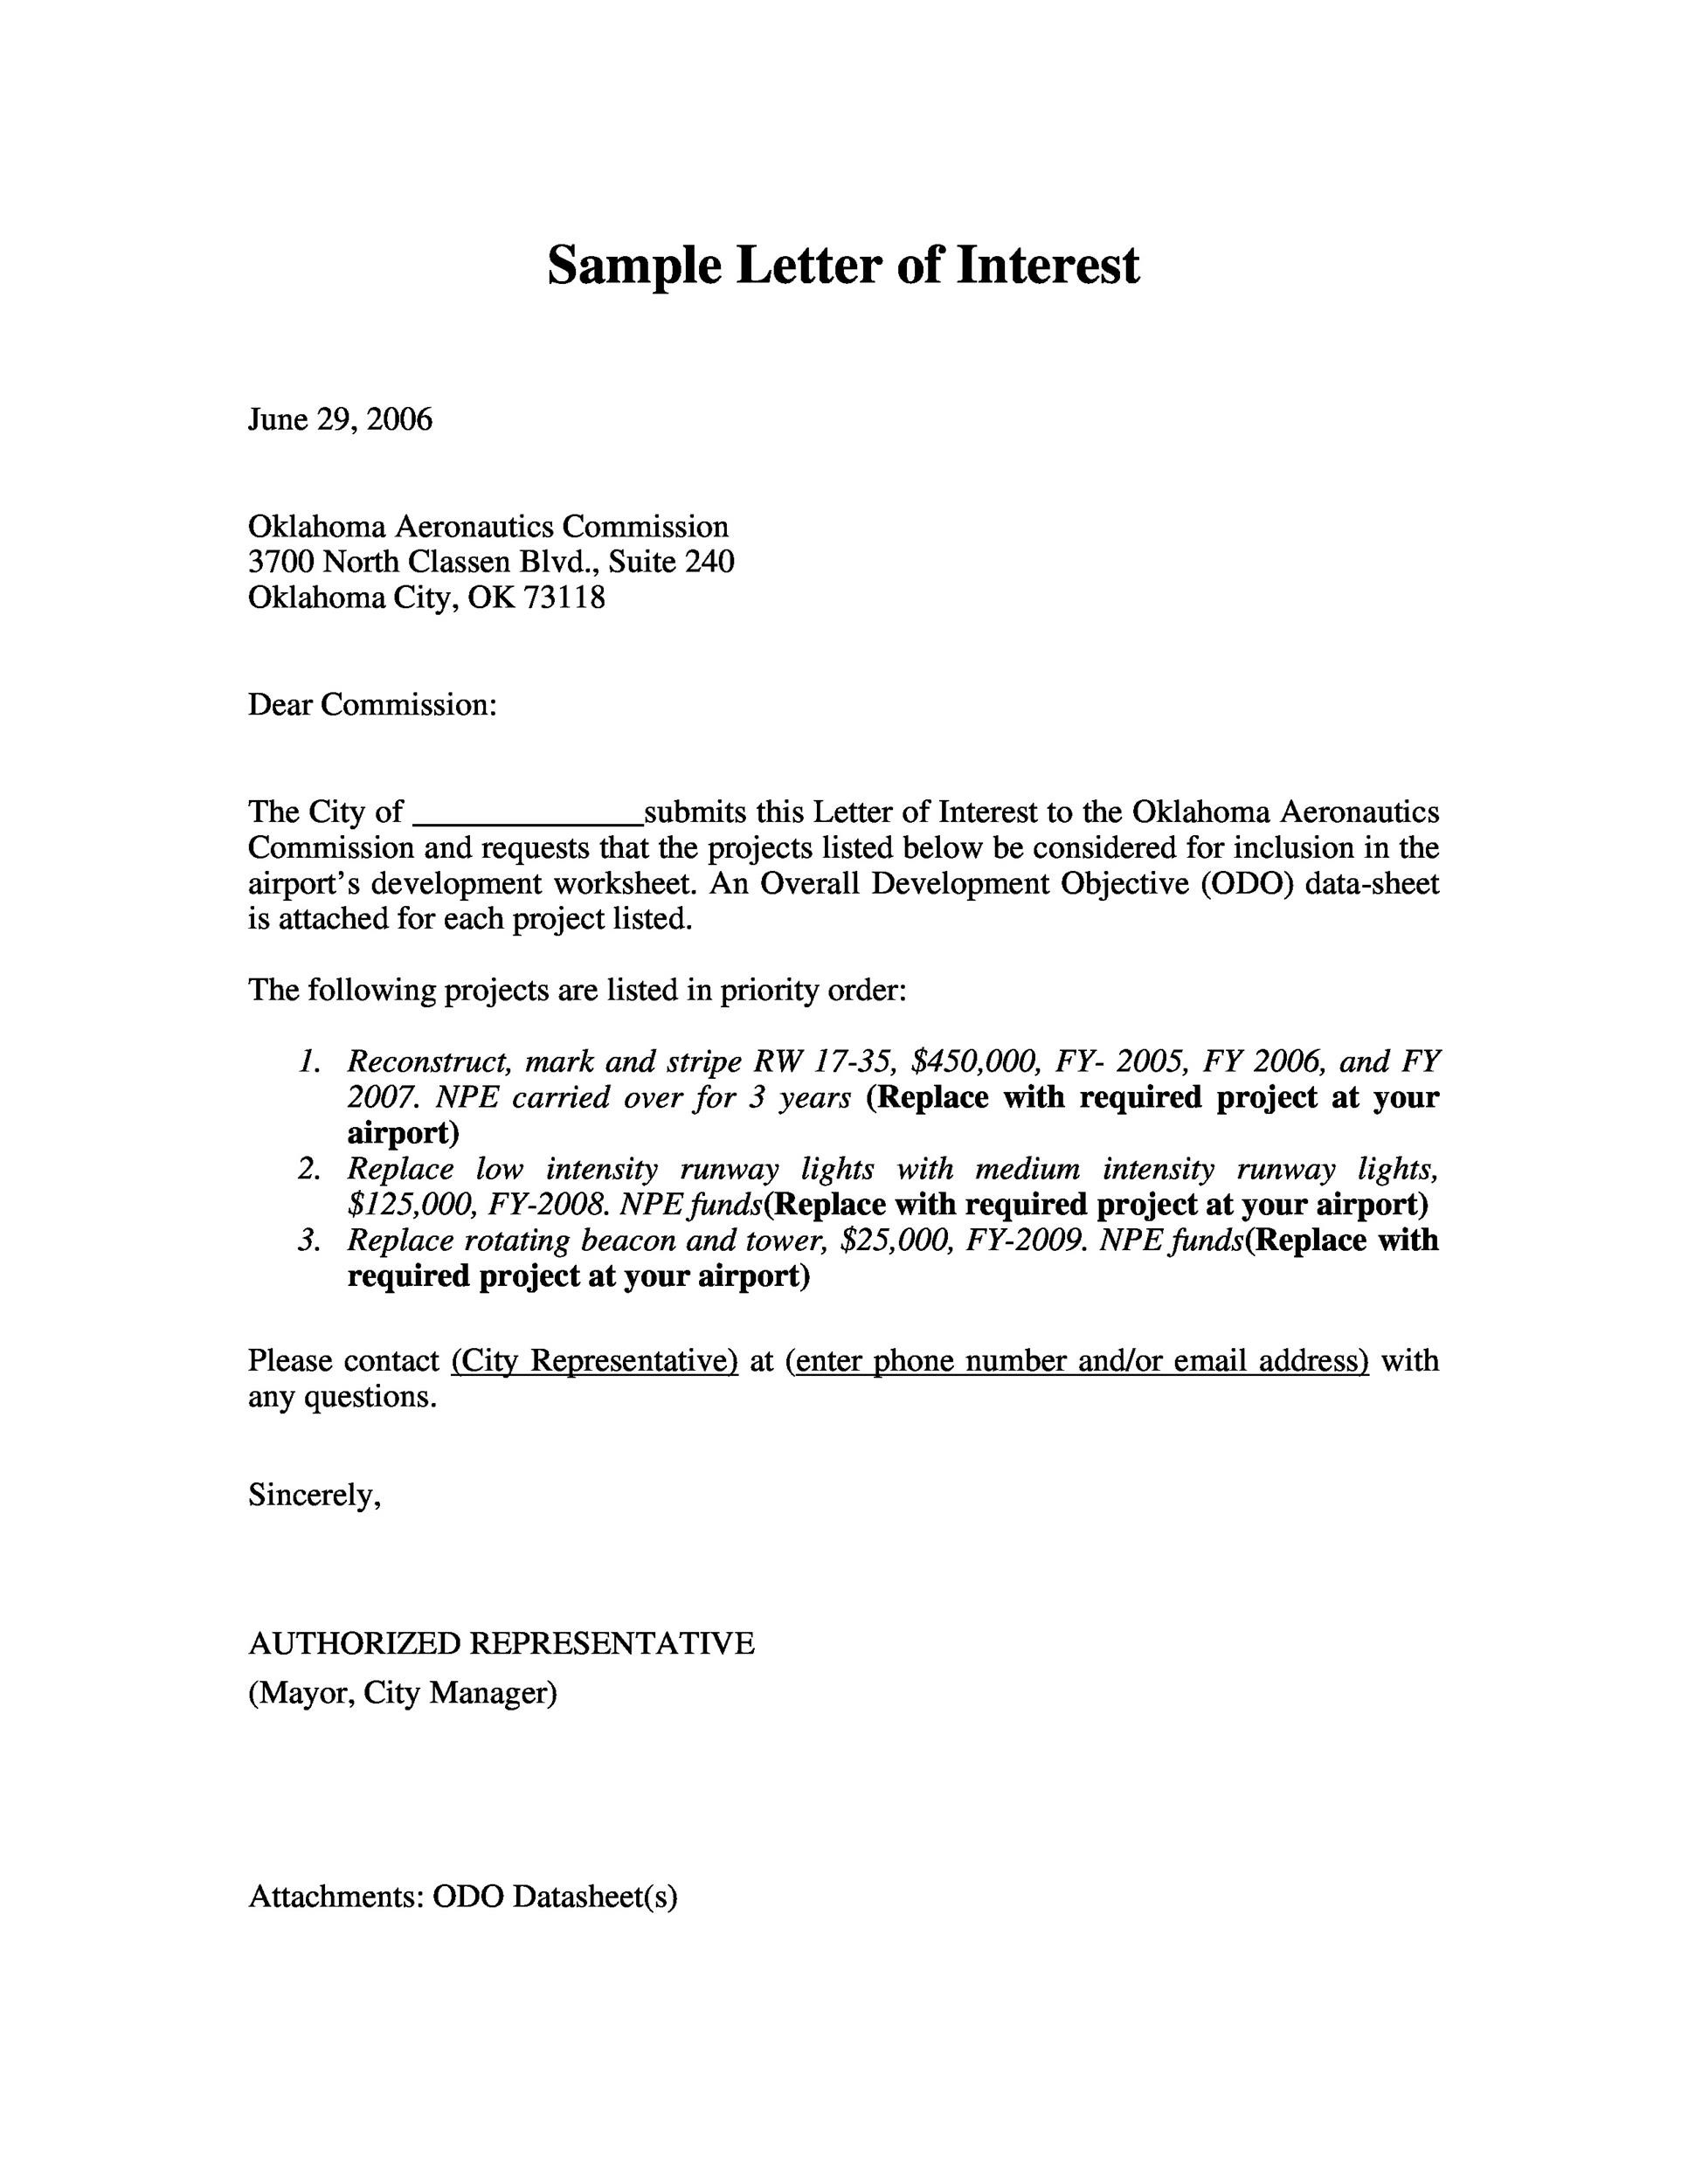 letter of interest template 30 amazing letter of interest samples amp templates 13042